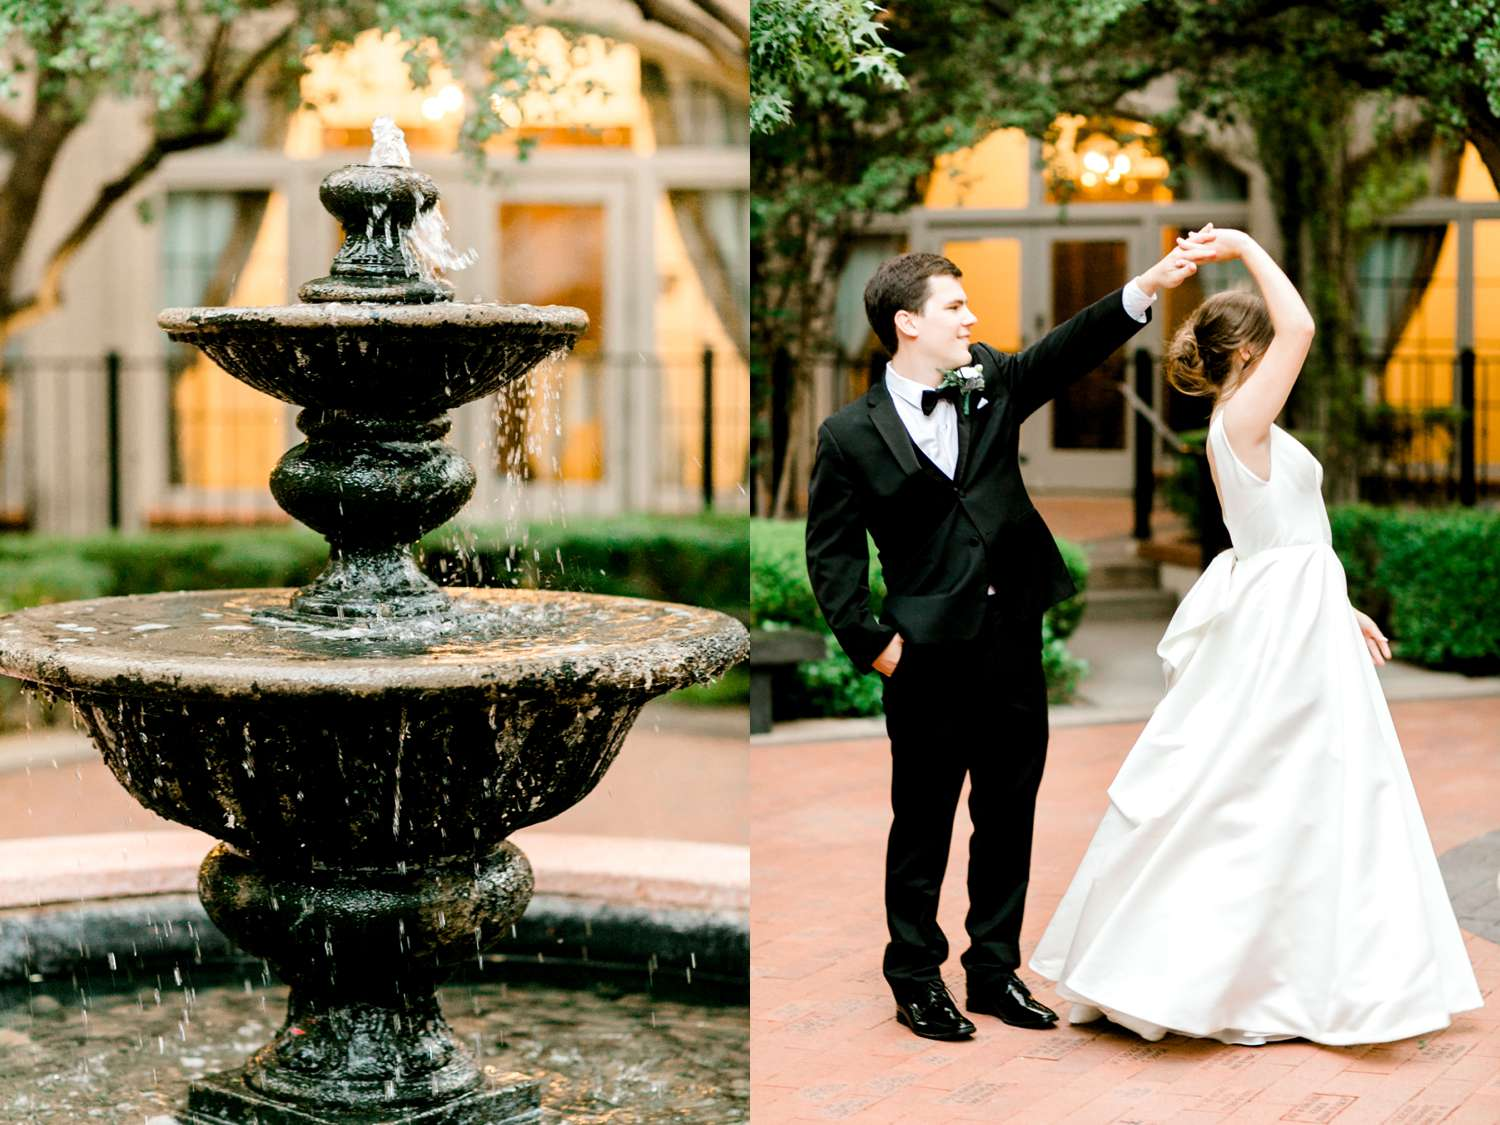 HANNAH+CRAIG+CHILDS+TEXAS+TECH+WEDDING+ALLEEJ+LUBBOCK+PHOTOGRAPHER_0141.jpg